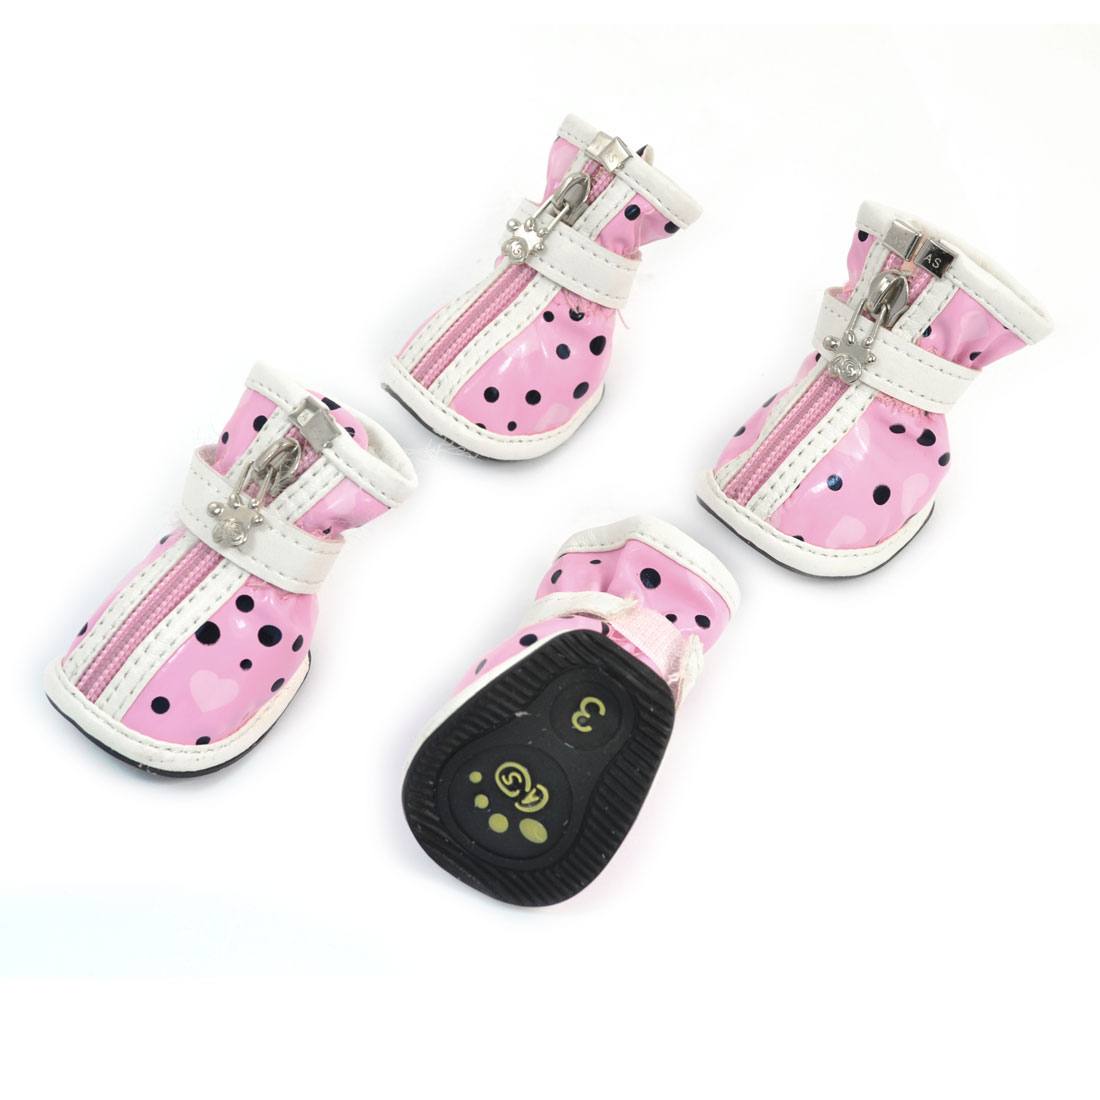 2 Pair Hook Loop Closure Zip Up Pet Poodle Doggy Shoes Boots Booties Pink White Size XS